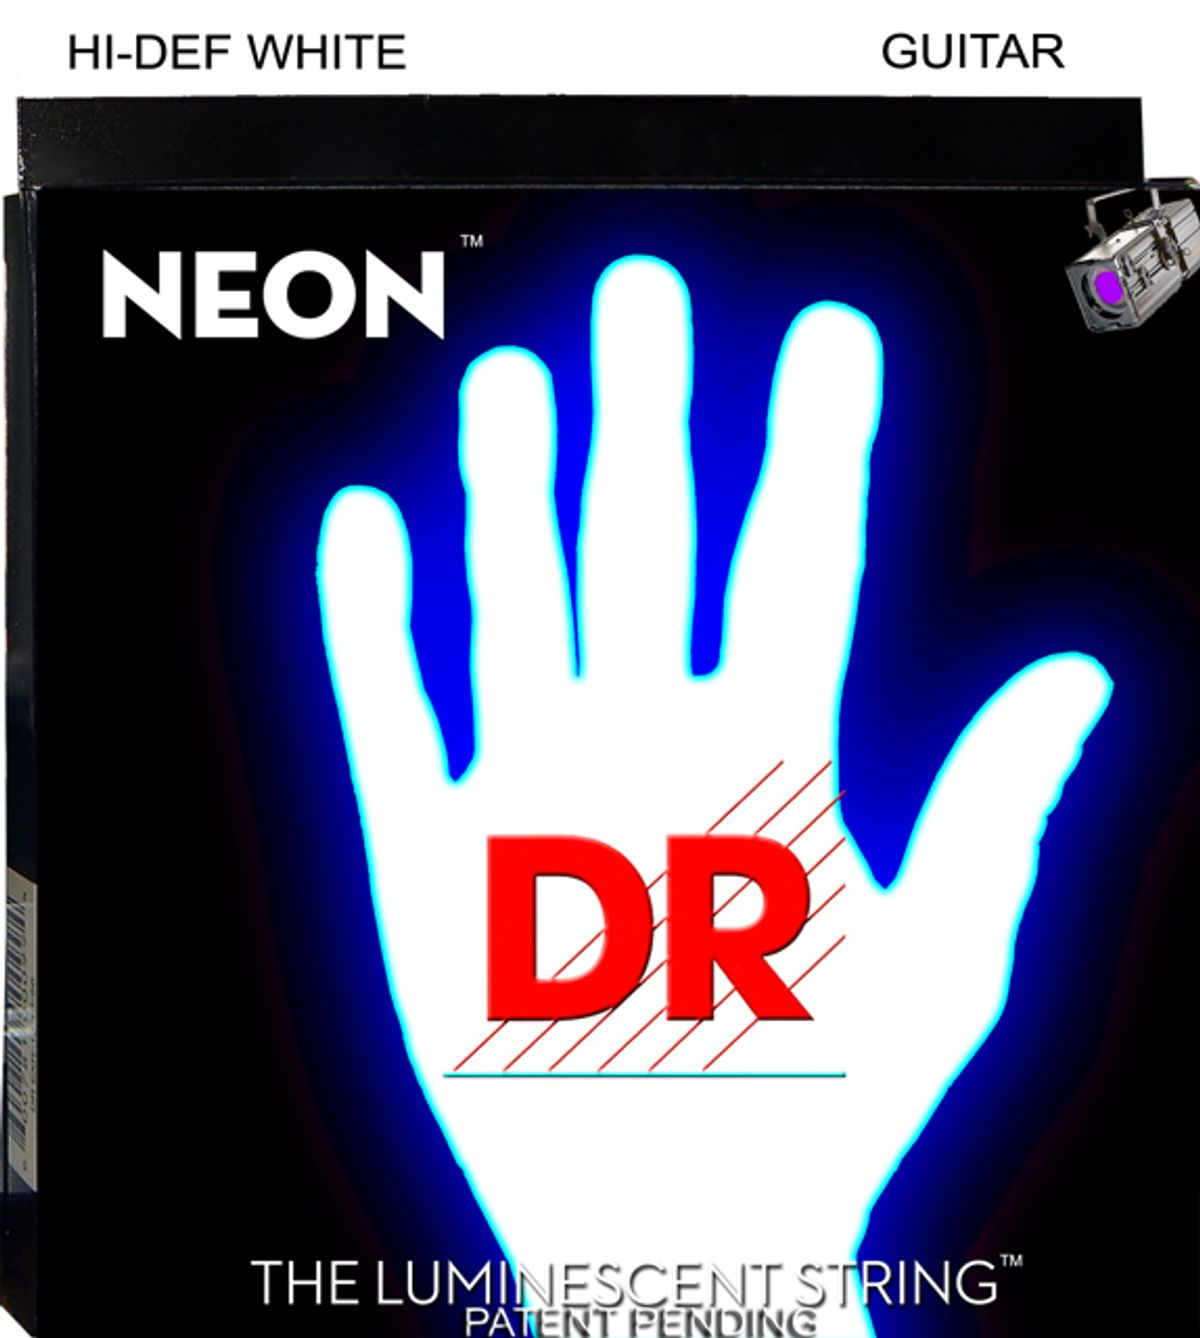 DR Strings Announces NEON Hi-Def White Luminescent Strings